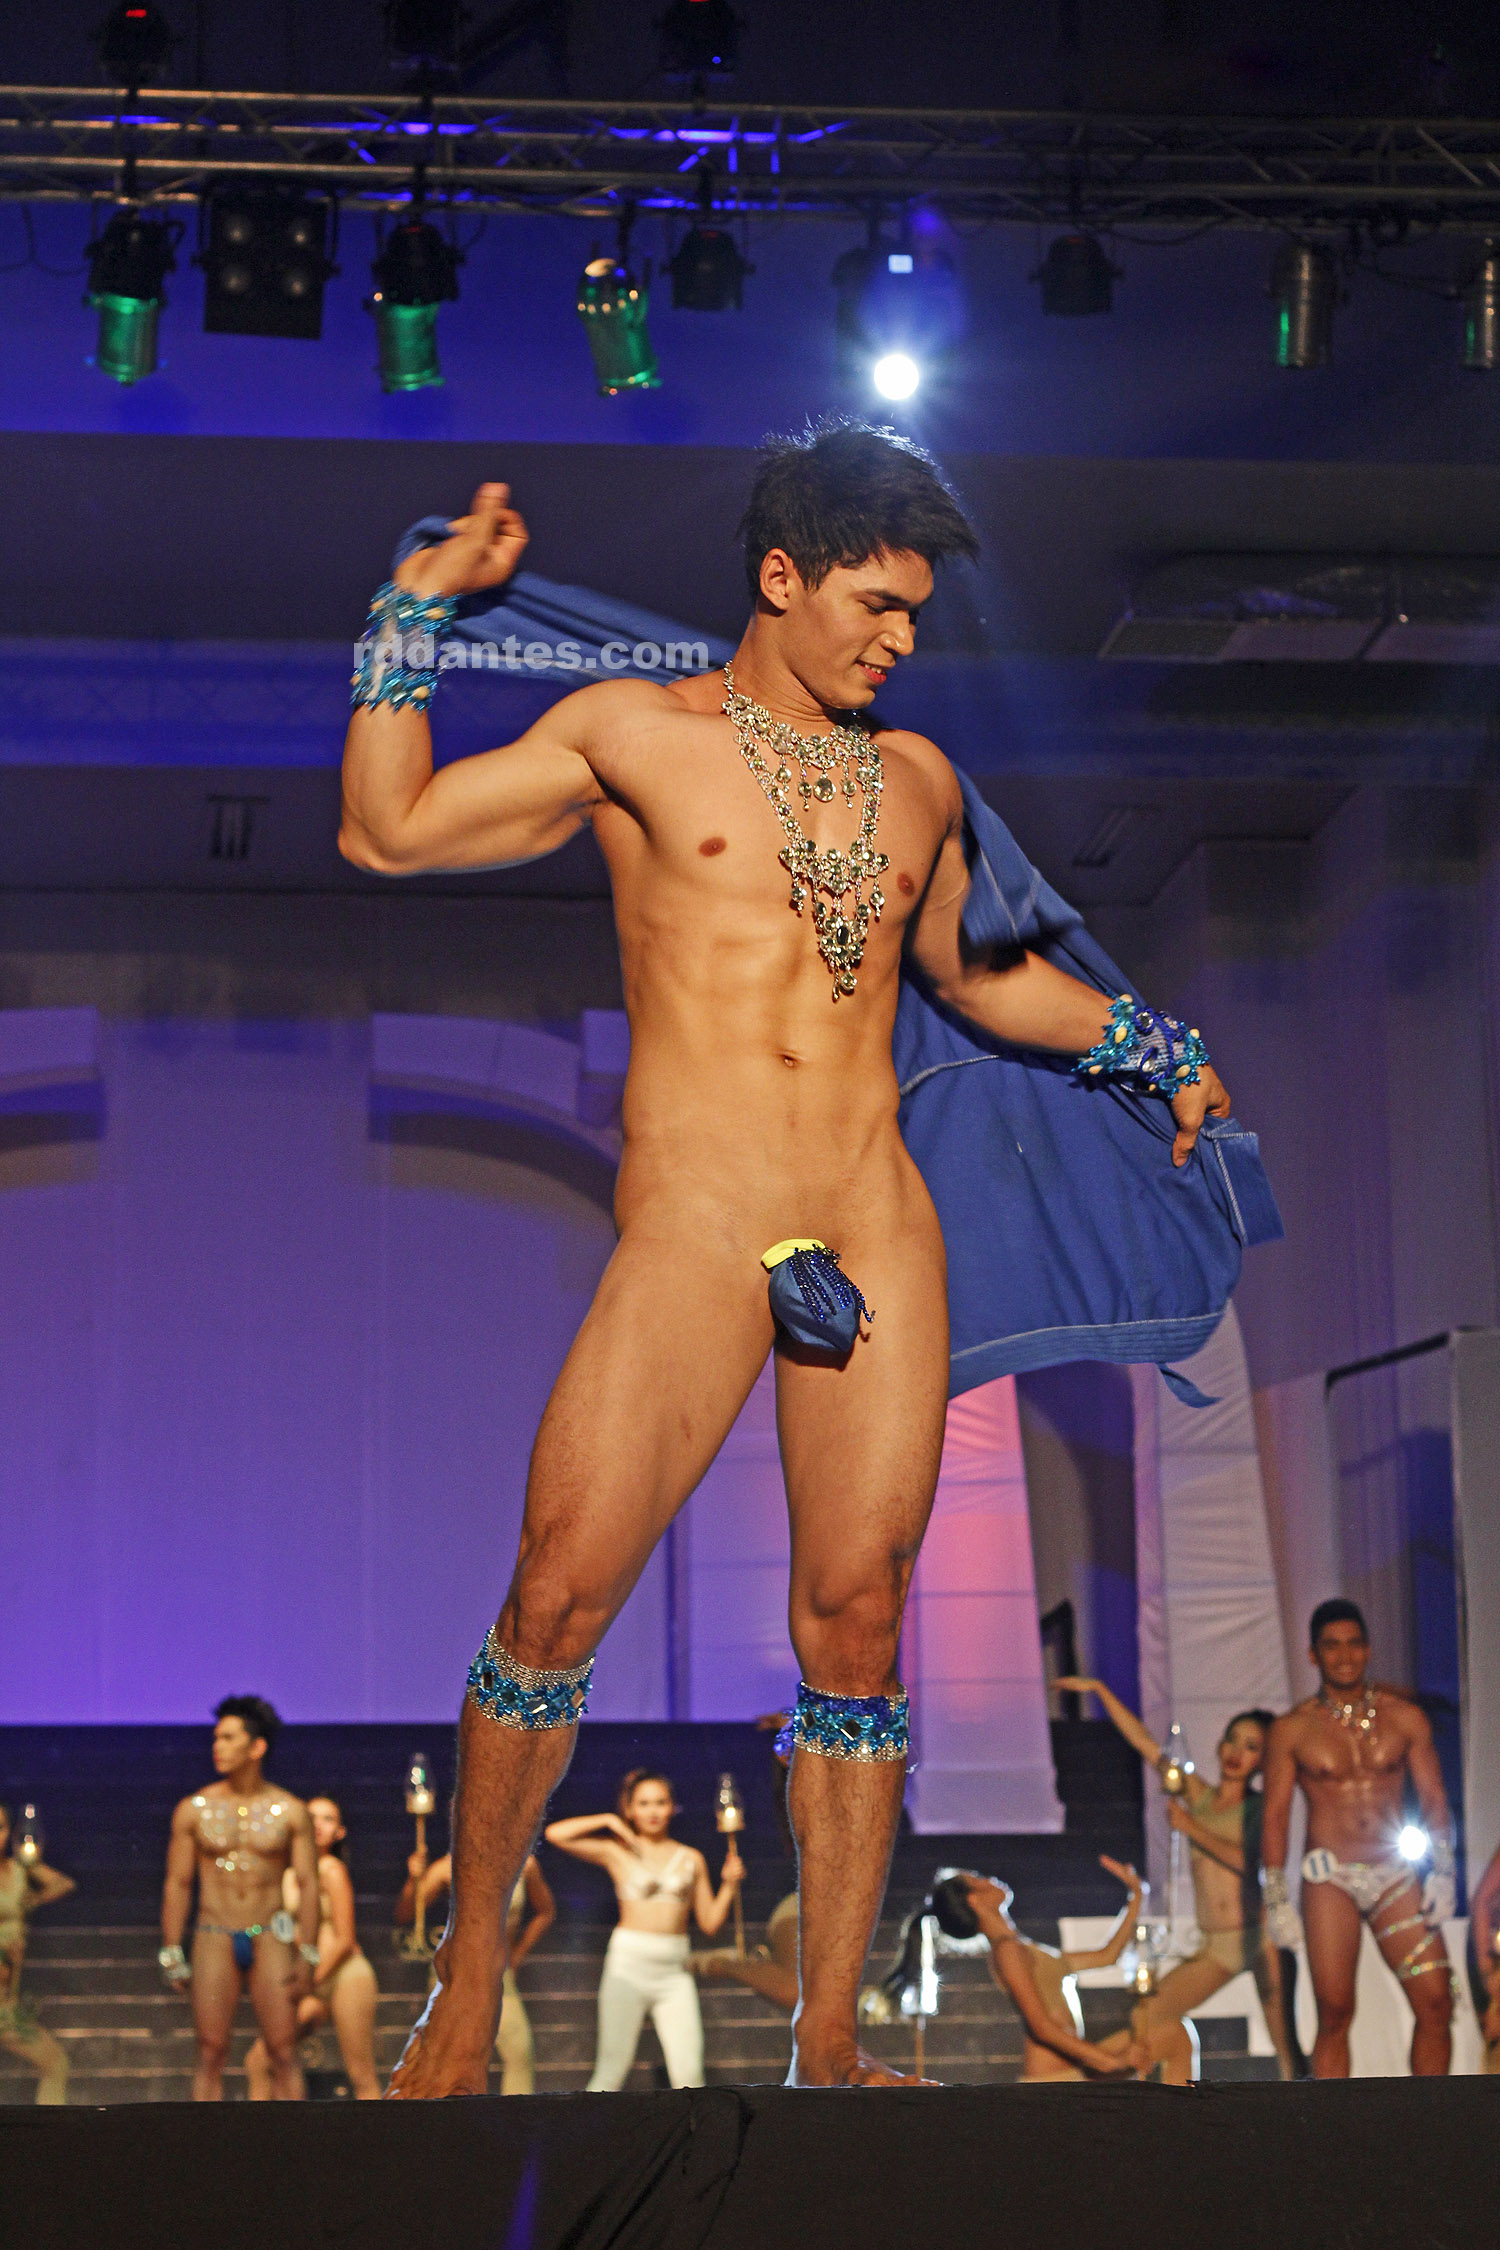 Men bikini contest